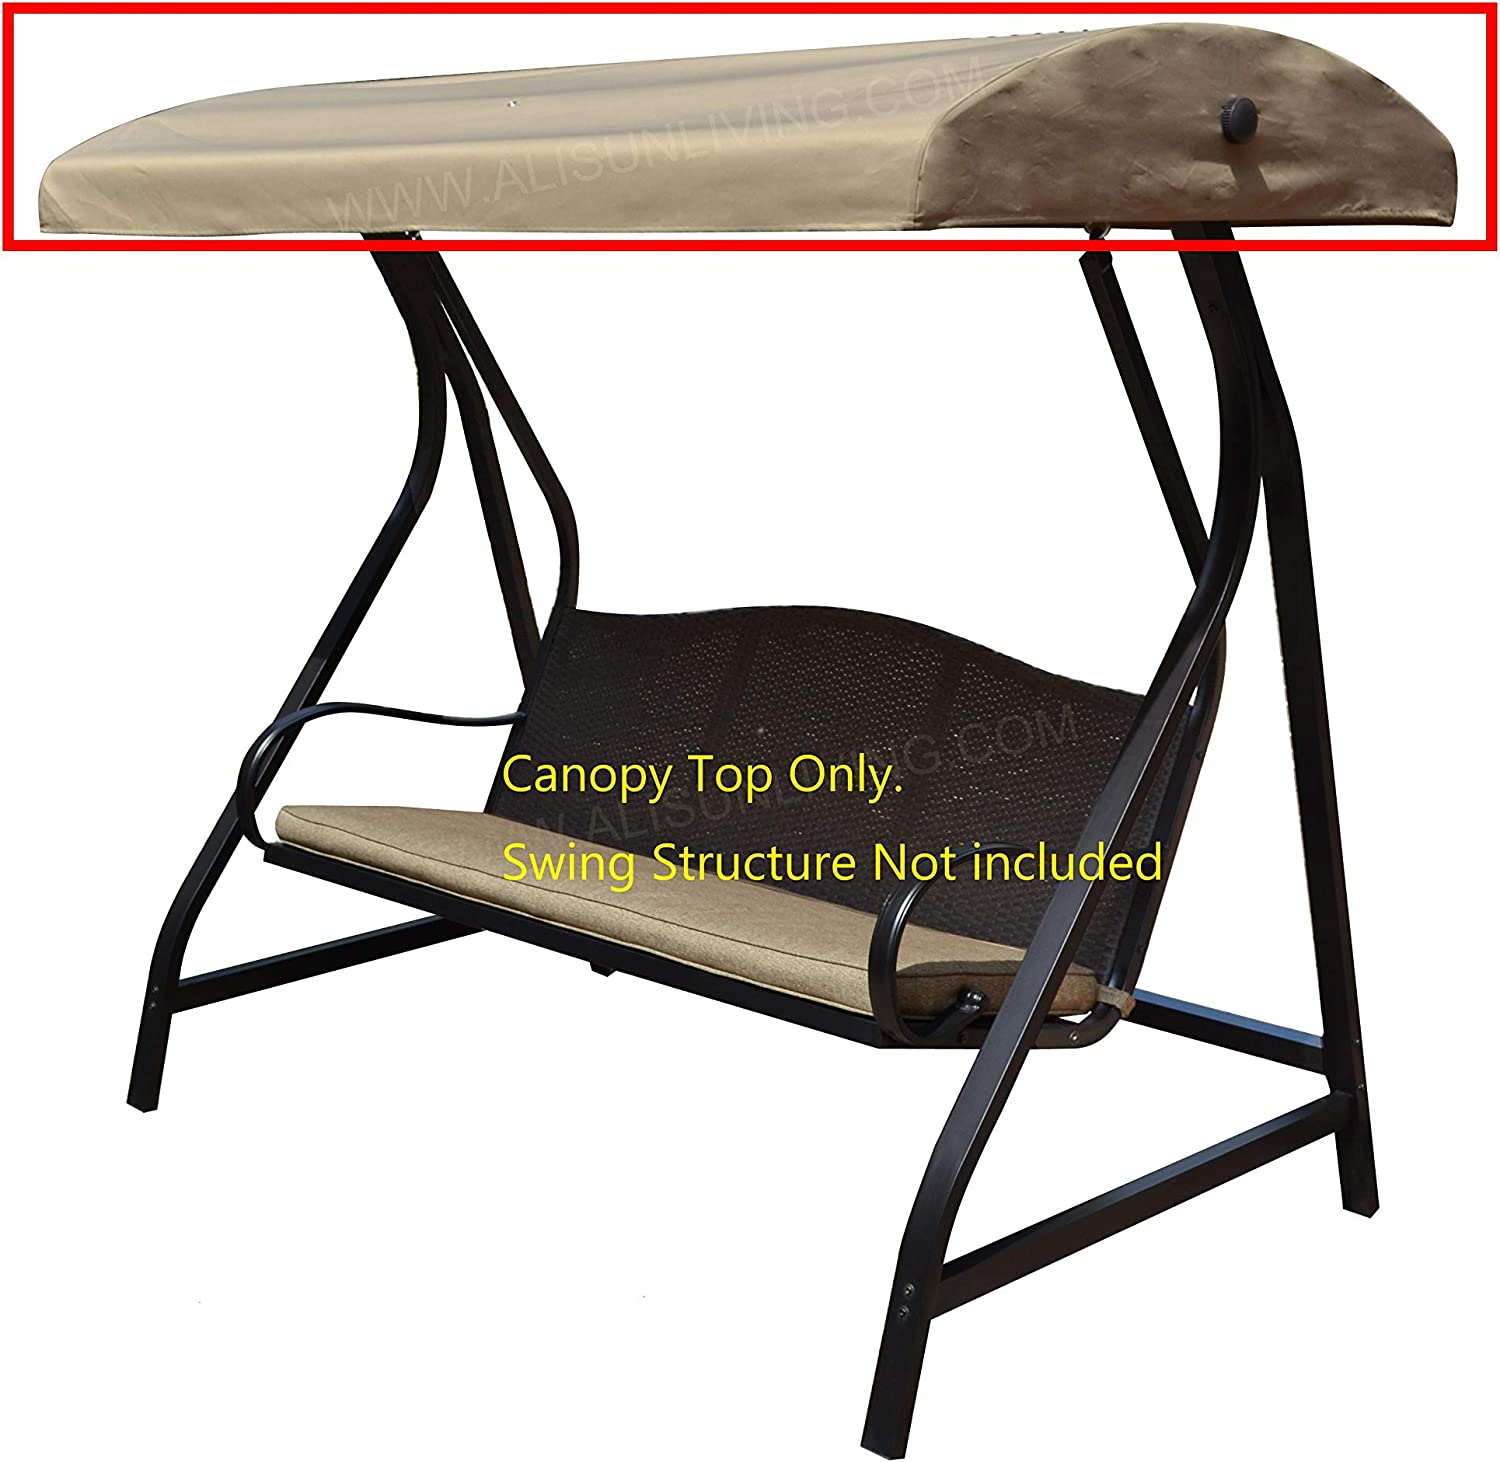 ALISUN Replacement Canopy Top for GT Porch Swing Model #GCS00229C (Will Not Fit Any Other Swing)